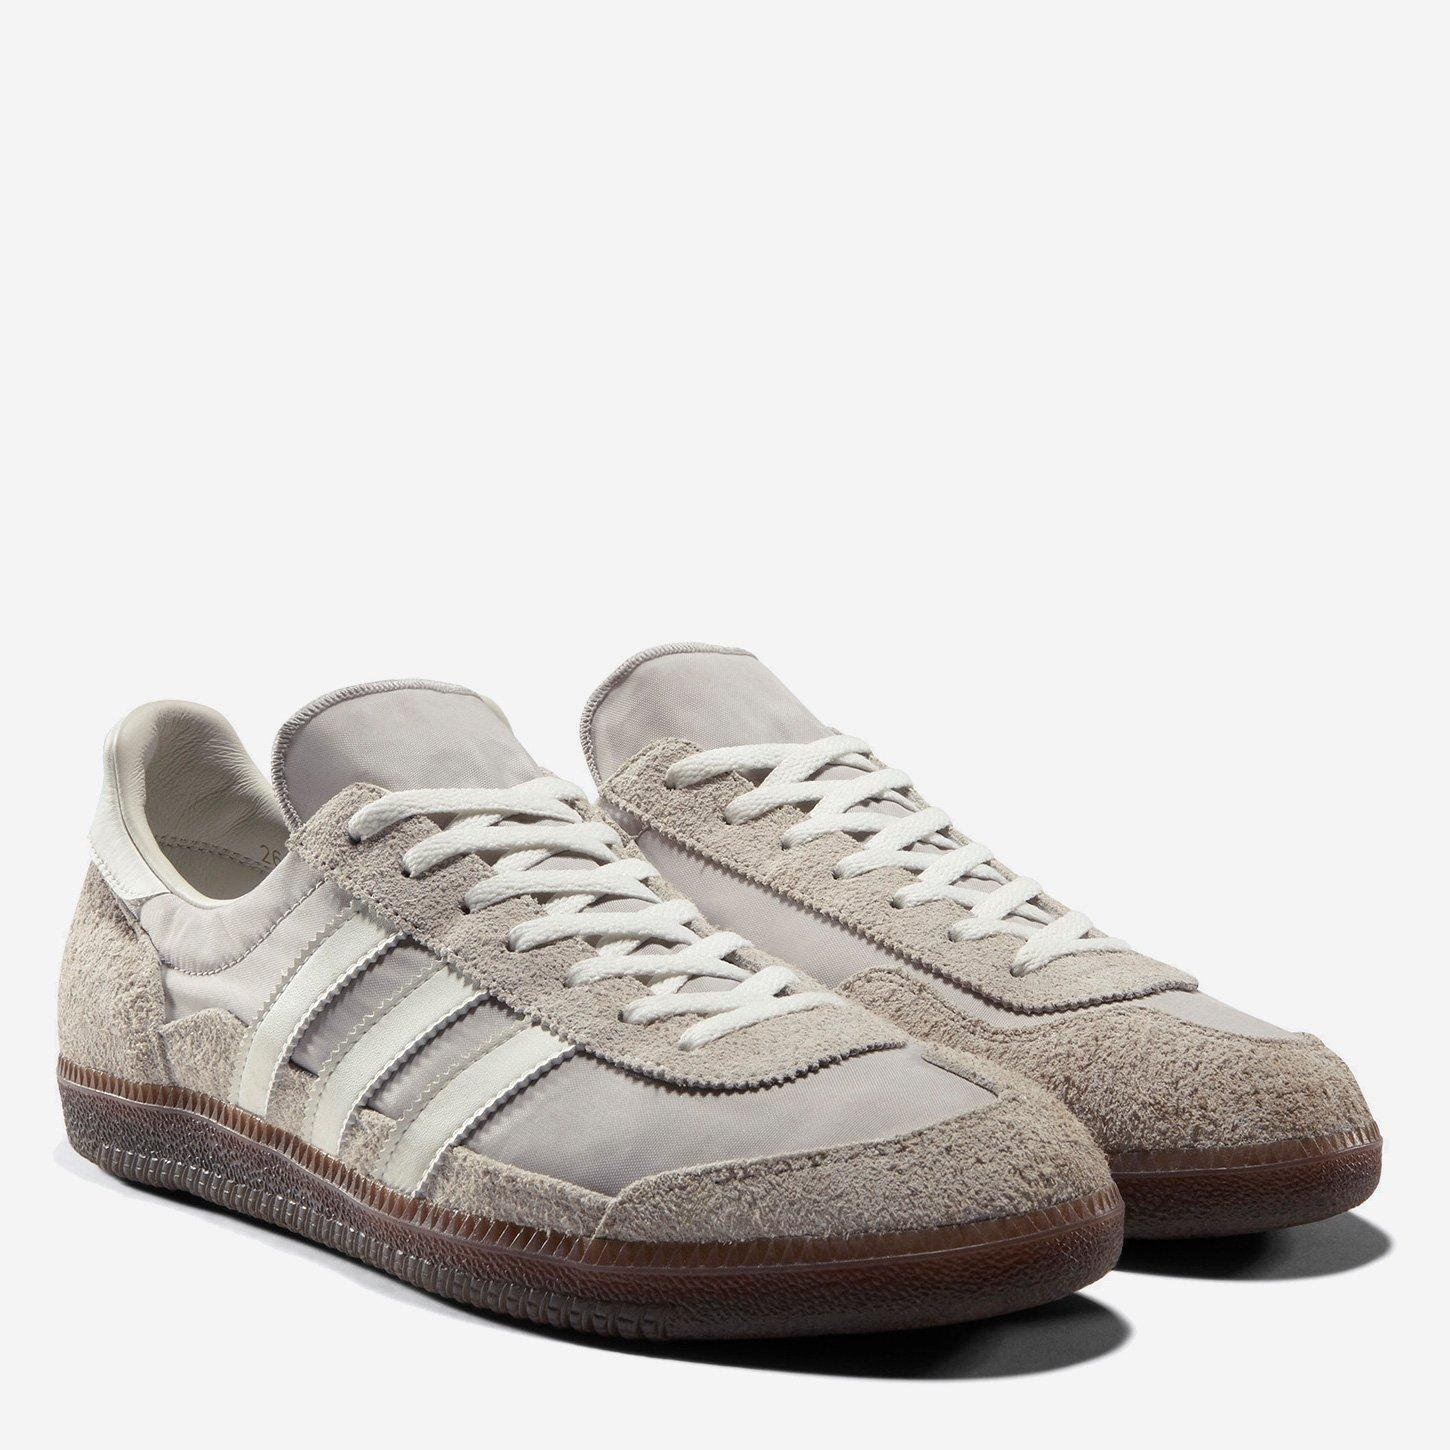 adidas Originals Spezial Wensley SPZL